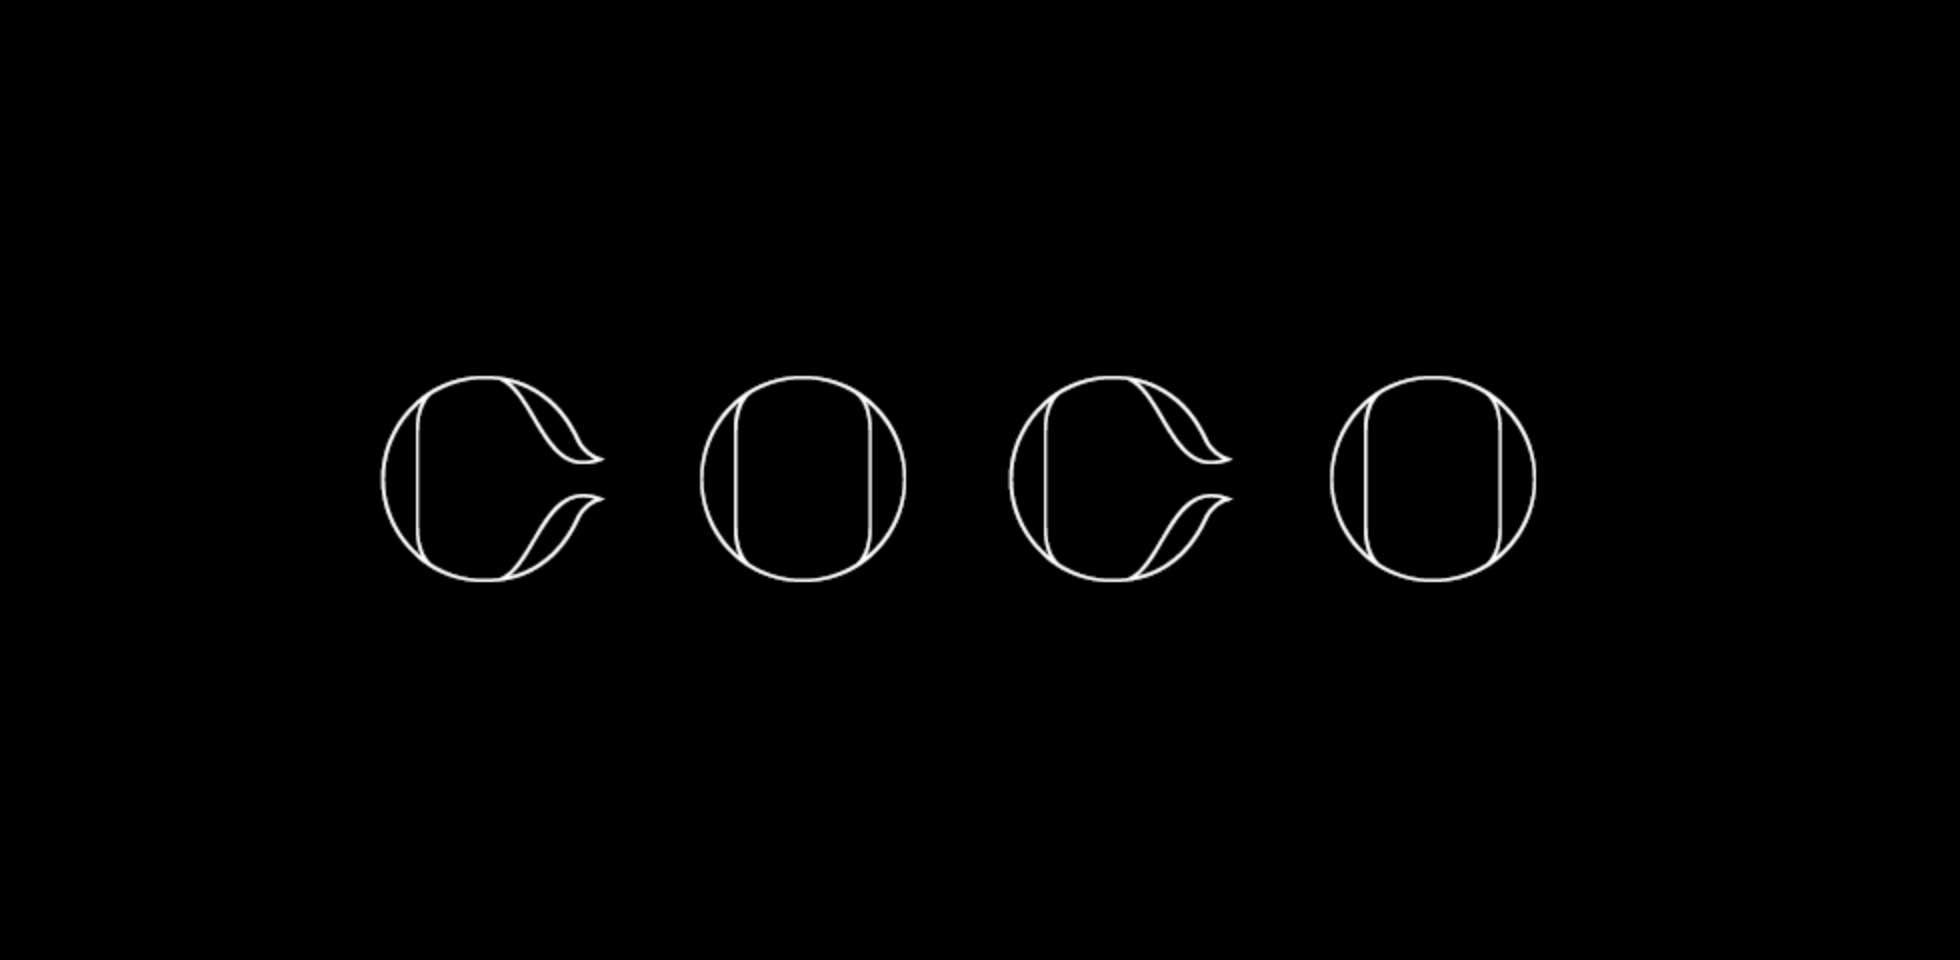 Free Download: Coco Font